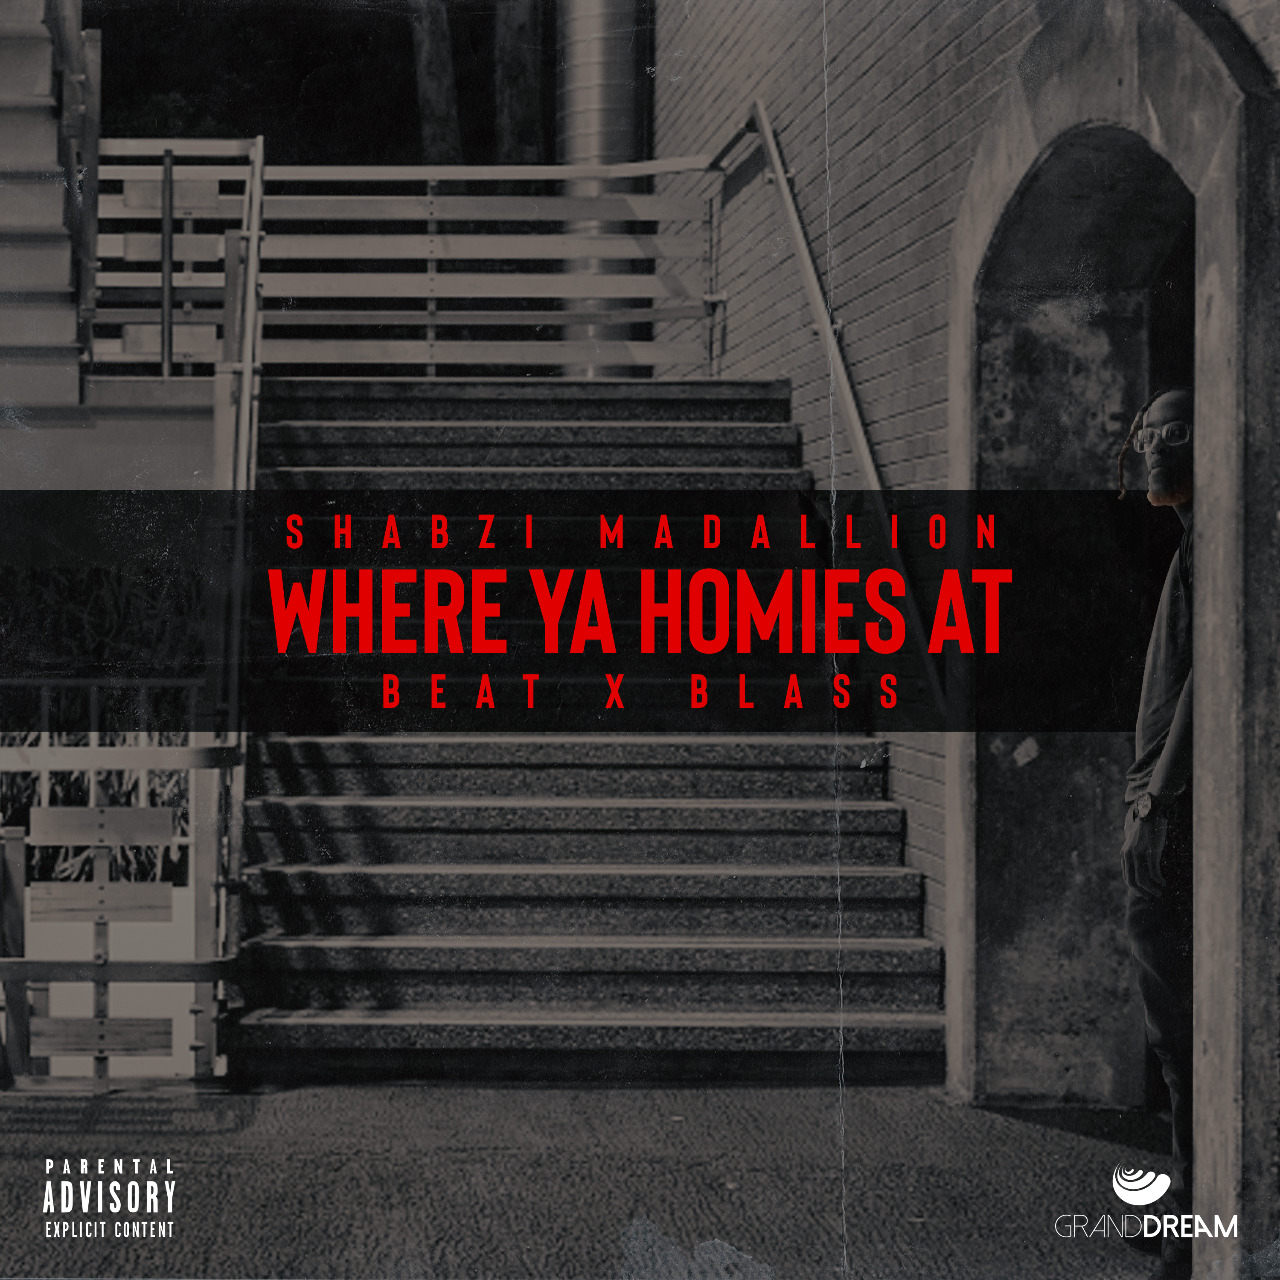 shabzi madallion Listen To ShabZi Madallion's New 'Where Ya Homies At' Joint ShabZi Madallion WYHA